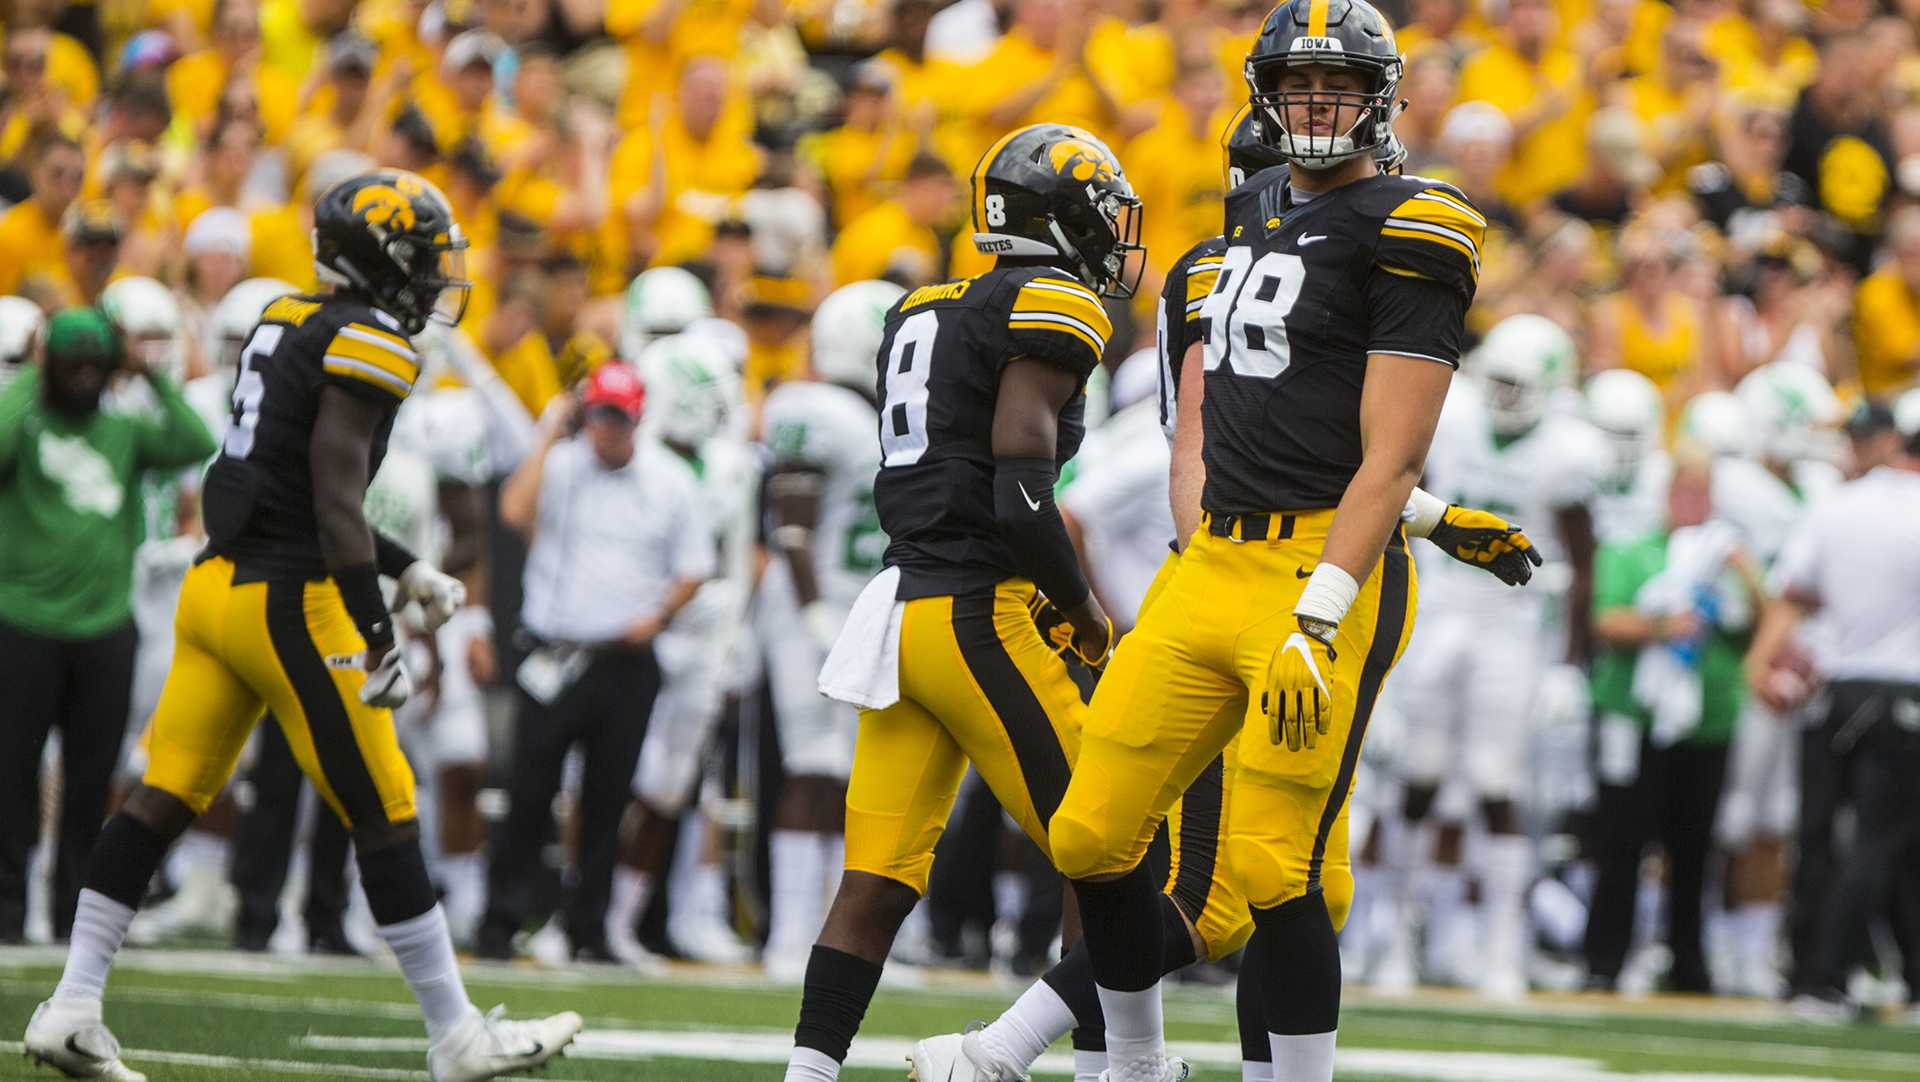 Iowa defensive end Anthony Nelson celebrates during the game between Iowa and North Texas at Kinnick Stadium on Saturday, Sept. 16, 2017. The Hawkeyes went on to defeat the Mean Green 31-14. (Ben Smith/The Daily Iowan)